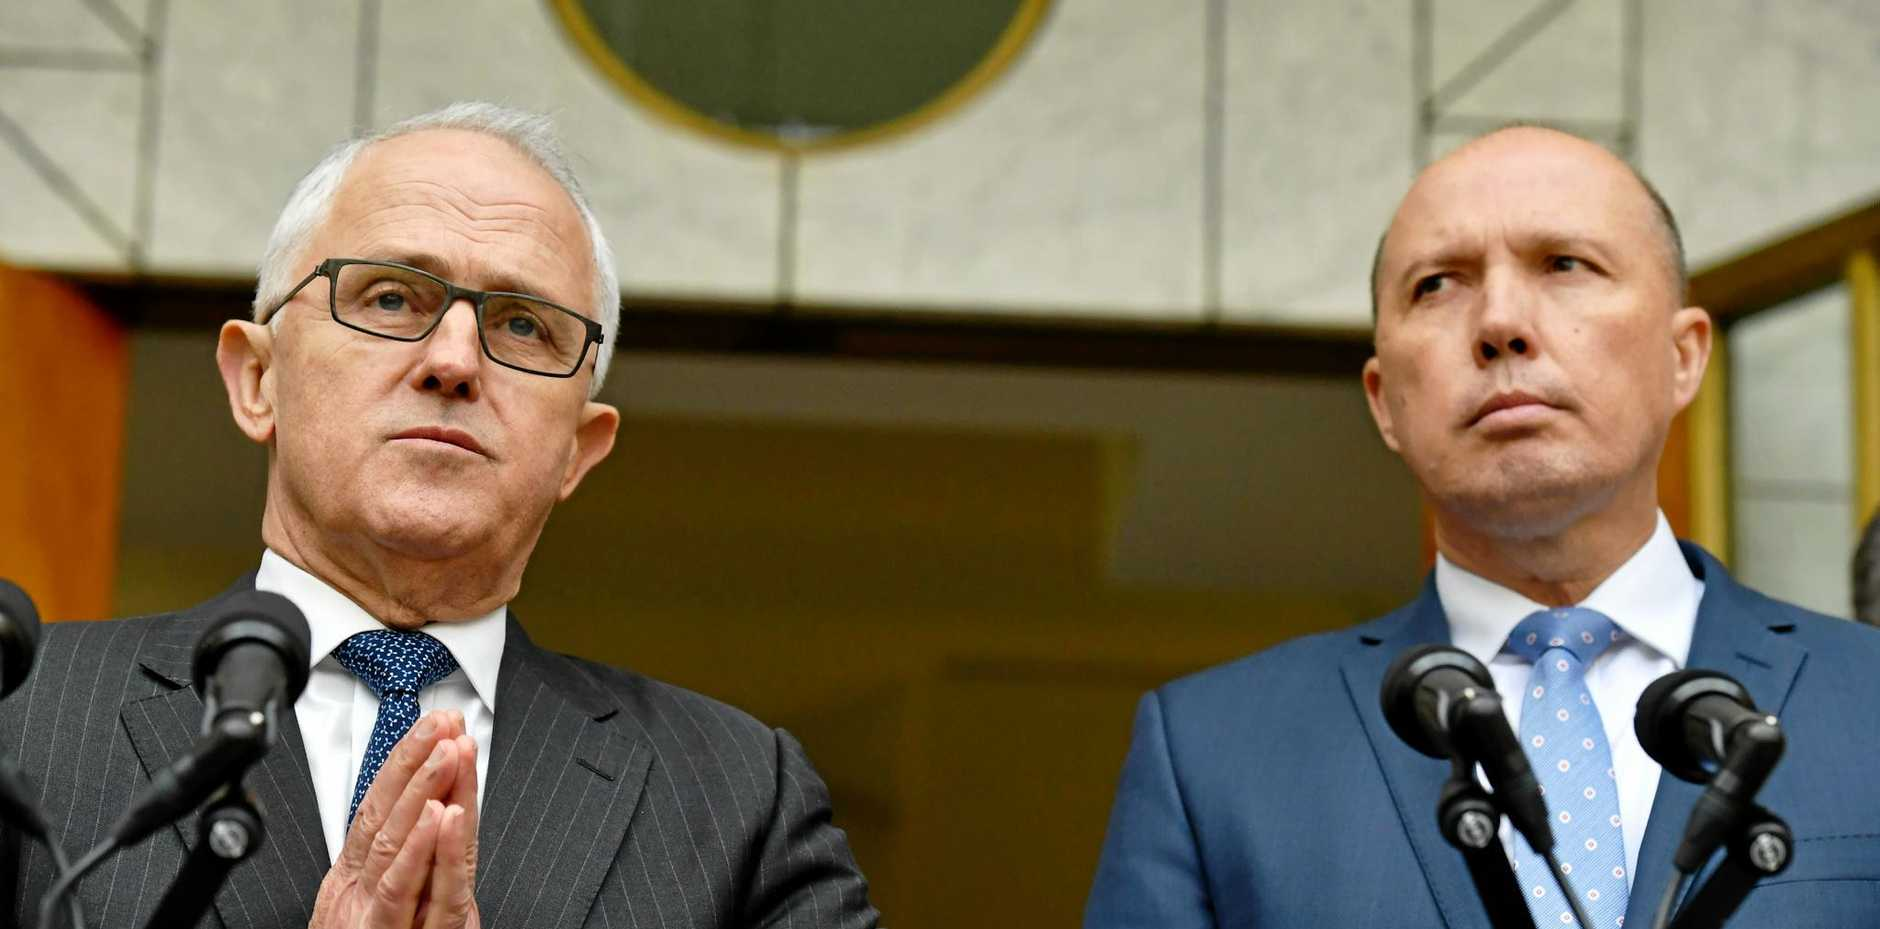 Prime Minister Malcolm Turnbull, left, has put Petter Dutton in charge of all our cops and spies.